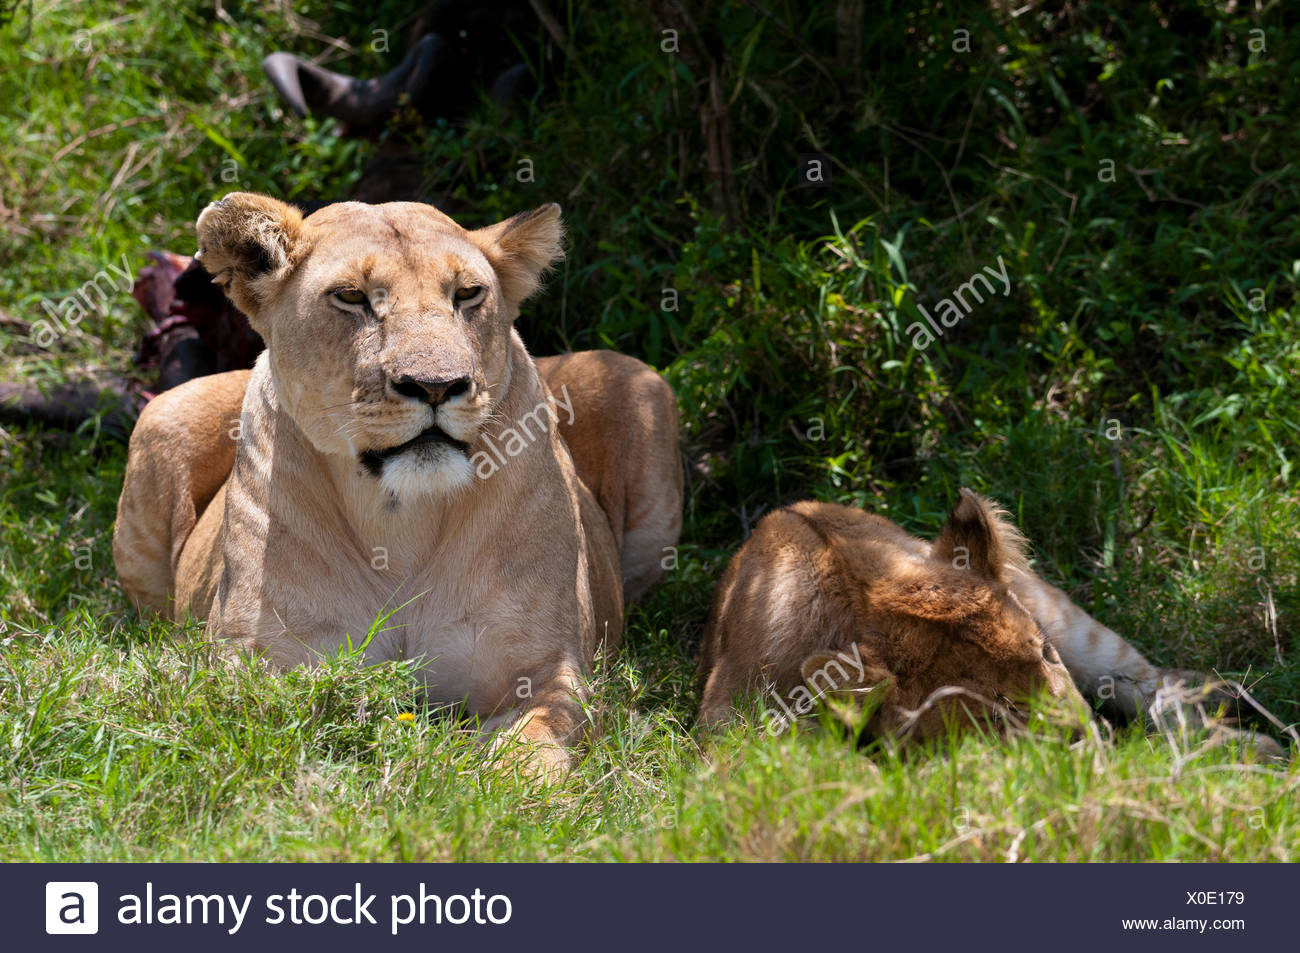 Lions (Panthera leo), Masai Mara, Rift Valley Province, Kenya Stock Photo